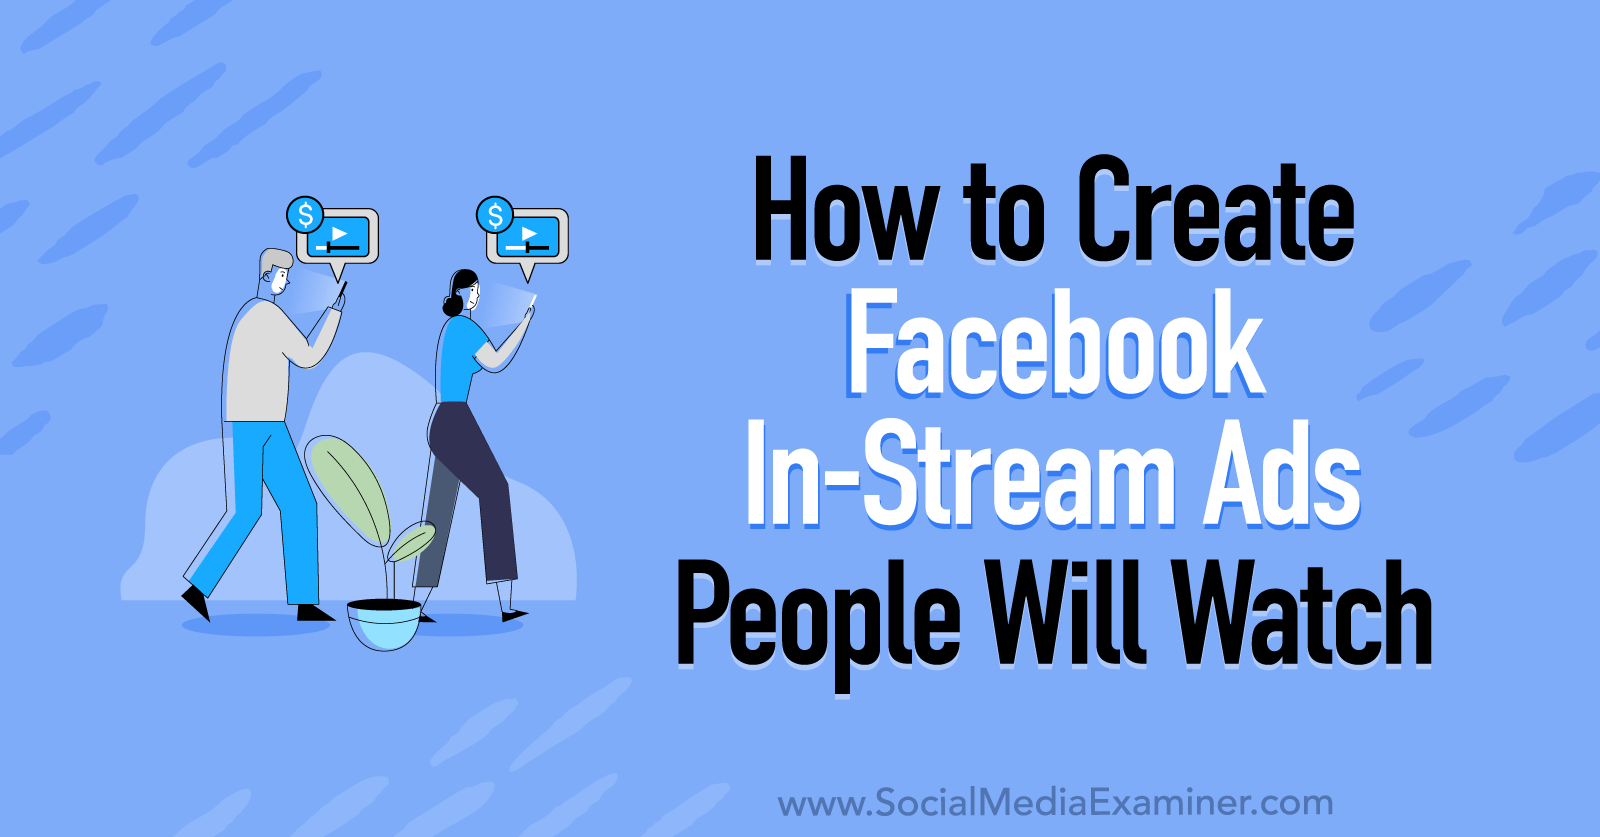 How to Create Facebook In-Stream Ads People Will Watch by Corinna Keefe on Social Media Examiner.